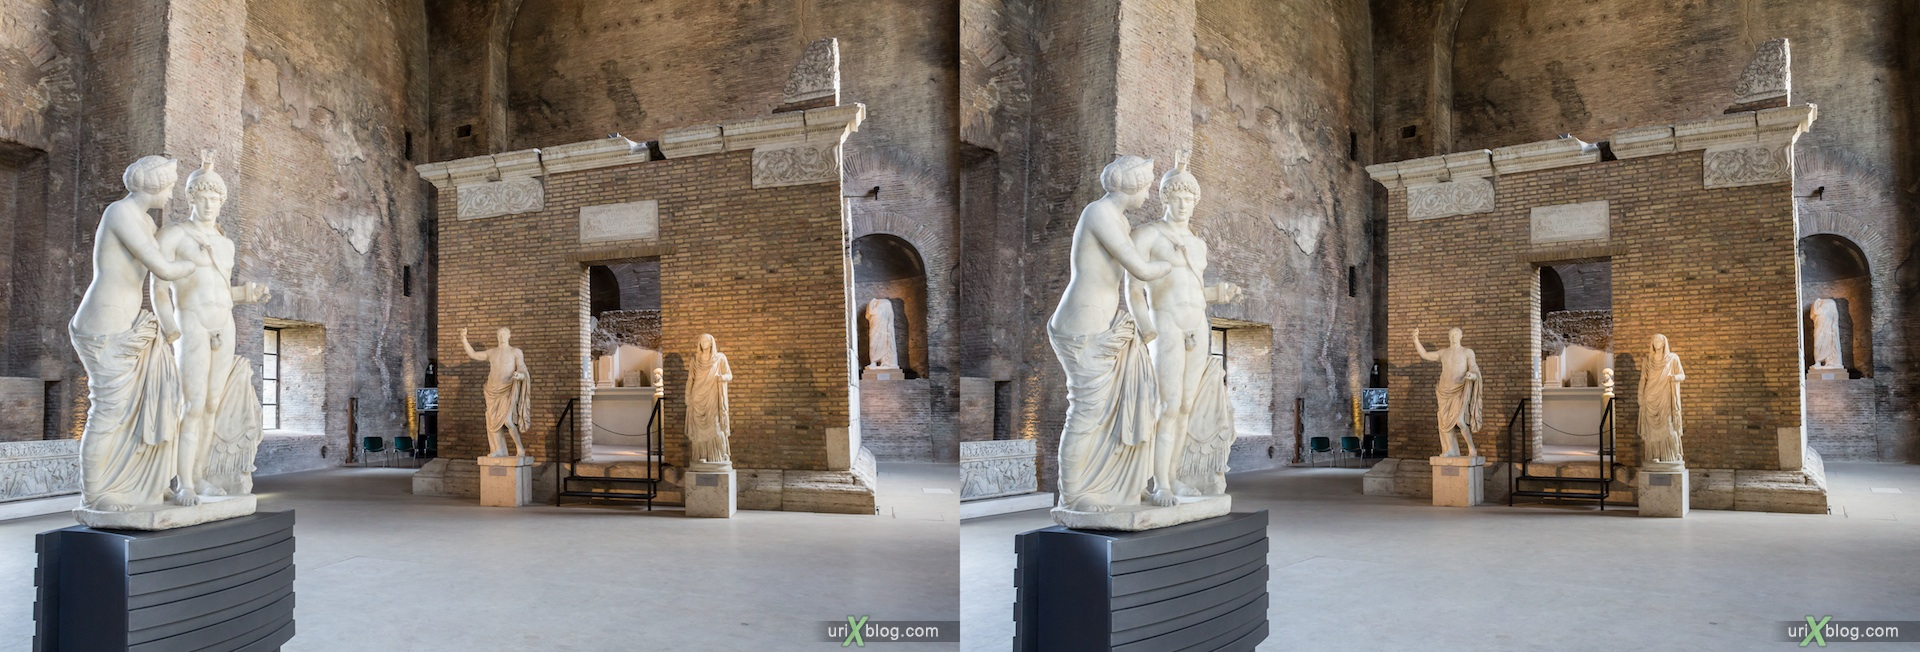 2012, National Museum of Rome, Diocletian Baths, Rome, Italy, Europe, 3D, stereo pair, cross-eyed, crossview, cross view stereo pair